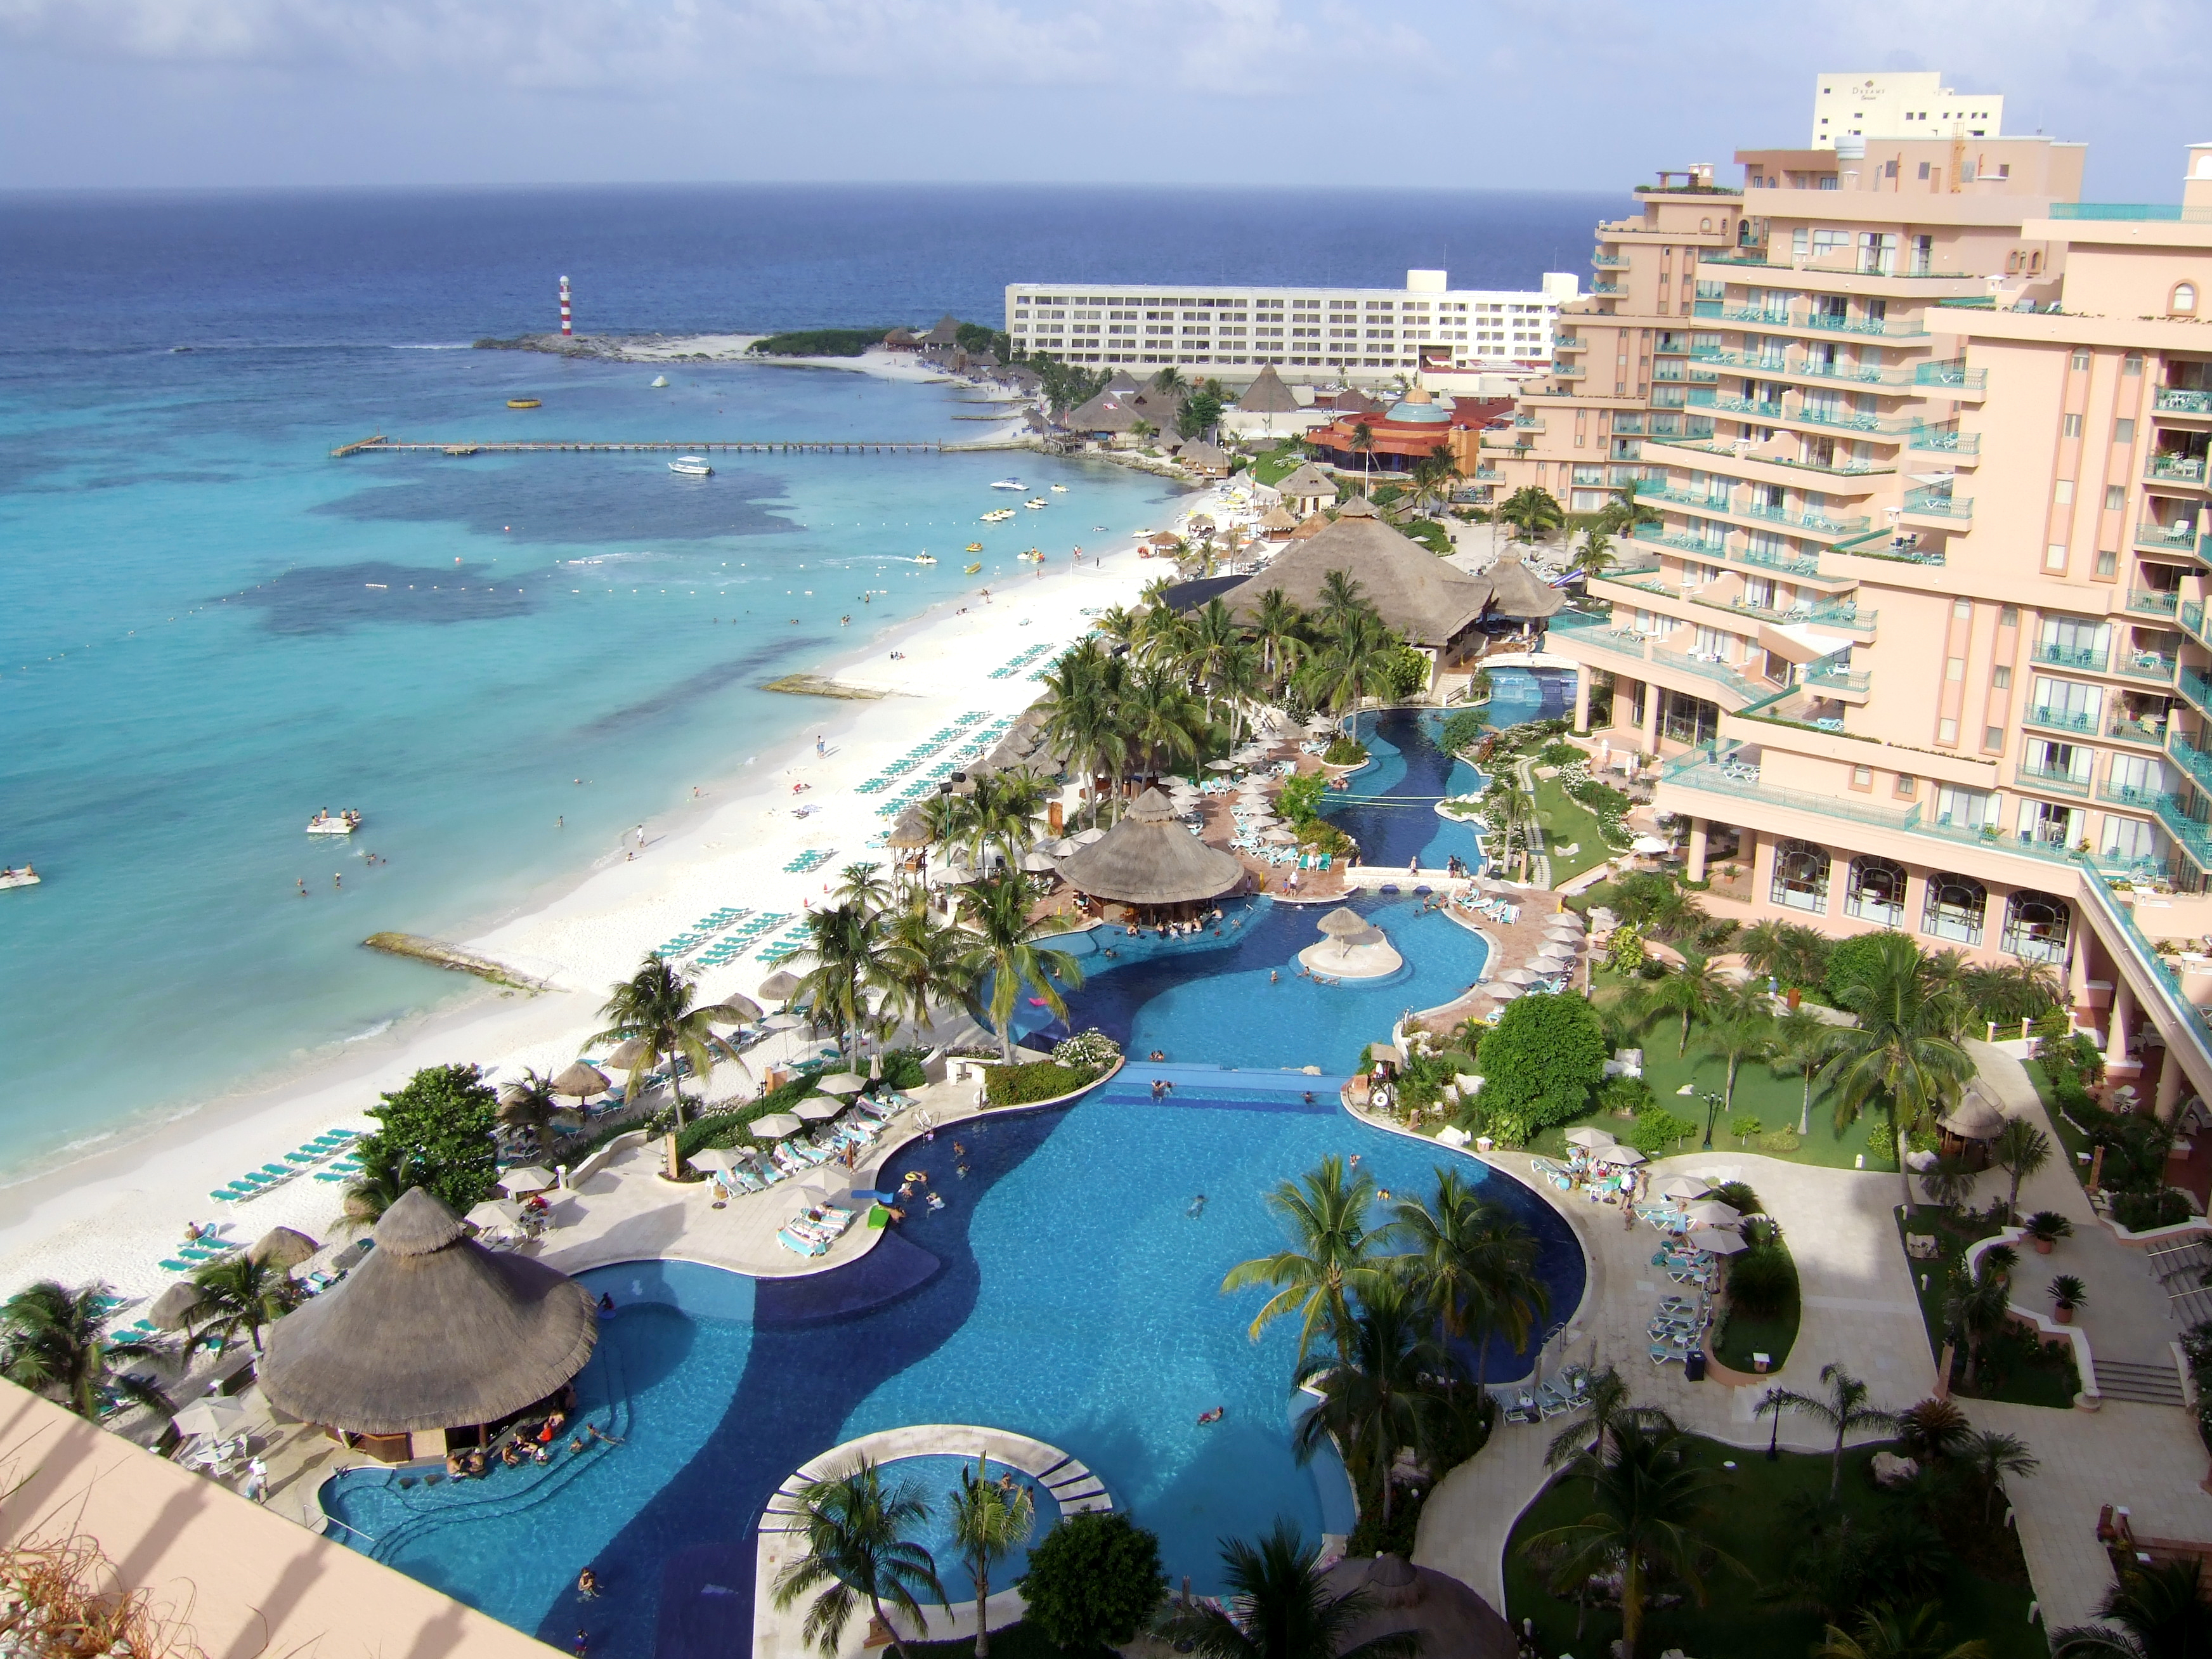 Best Luxury Hotels In Cancun Mexico Caribbean All Inclusive Resorts And Vacations Guide To